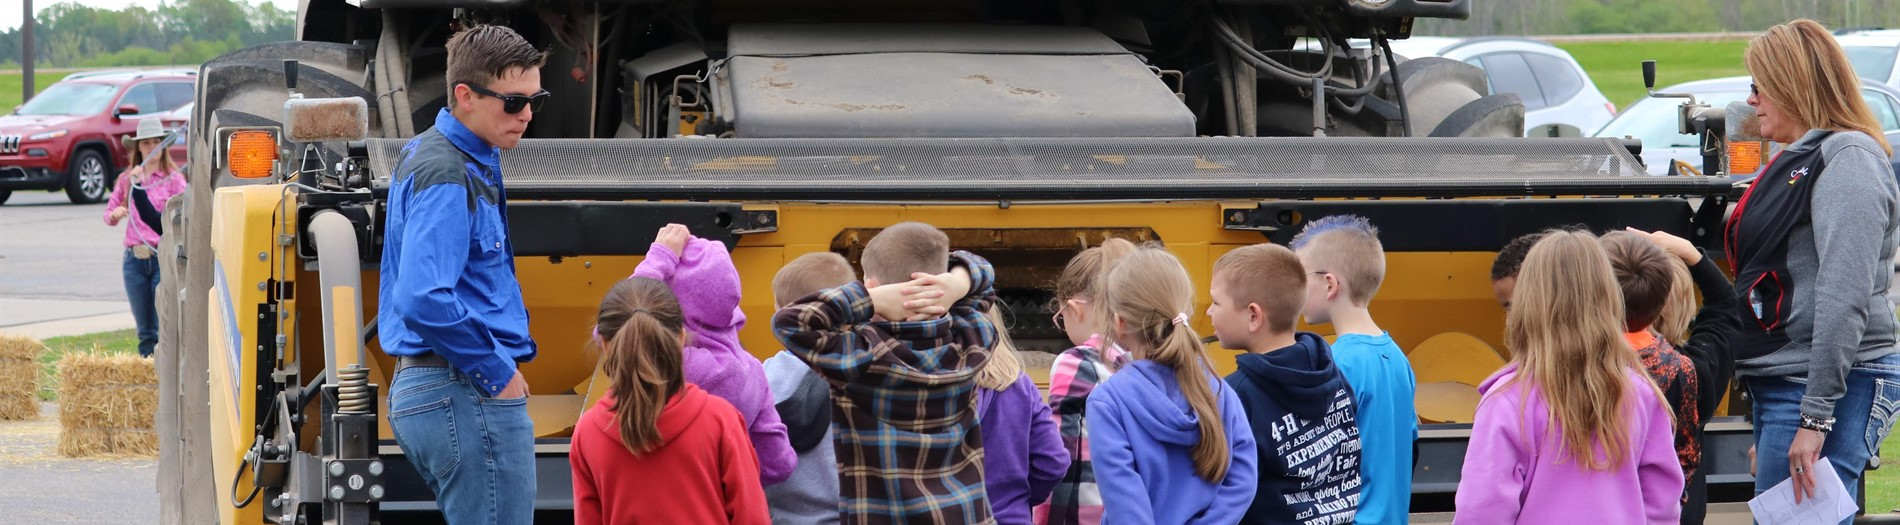 students observing farm implement